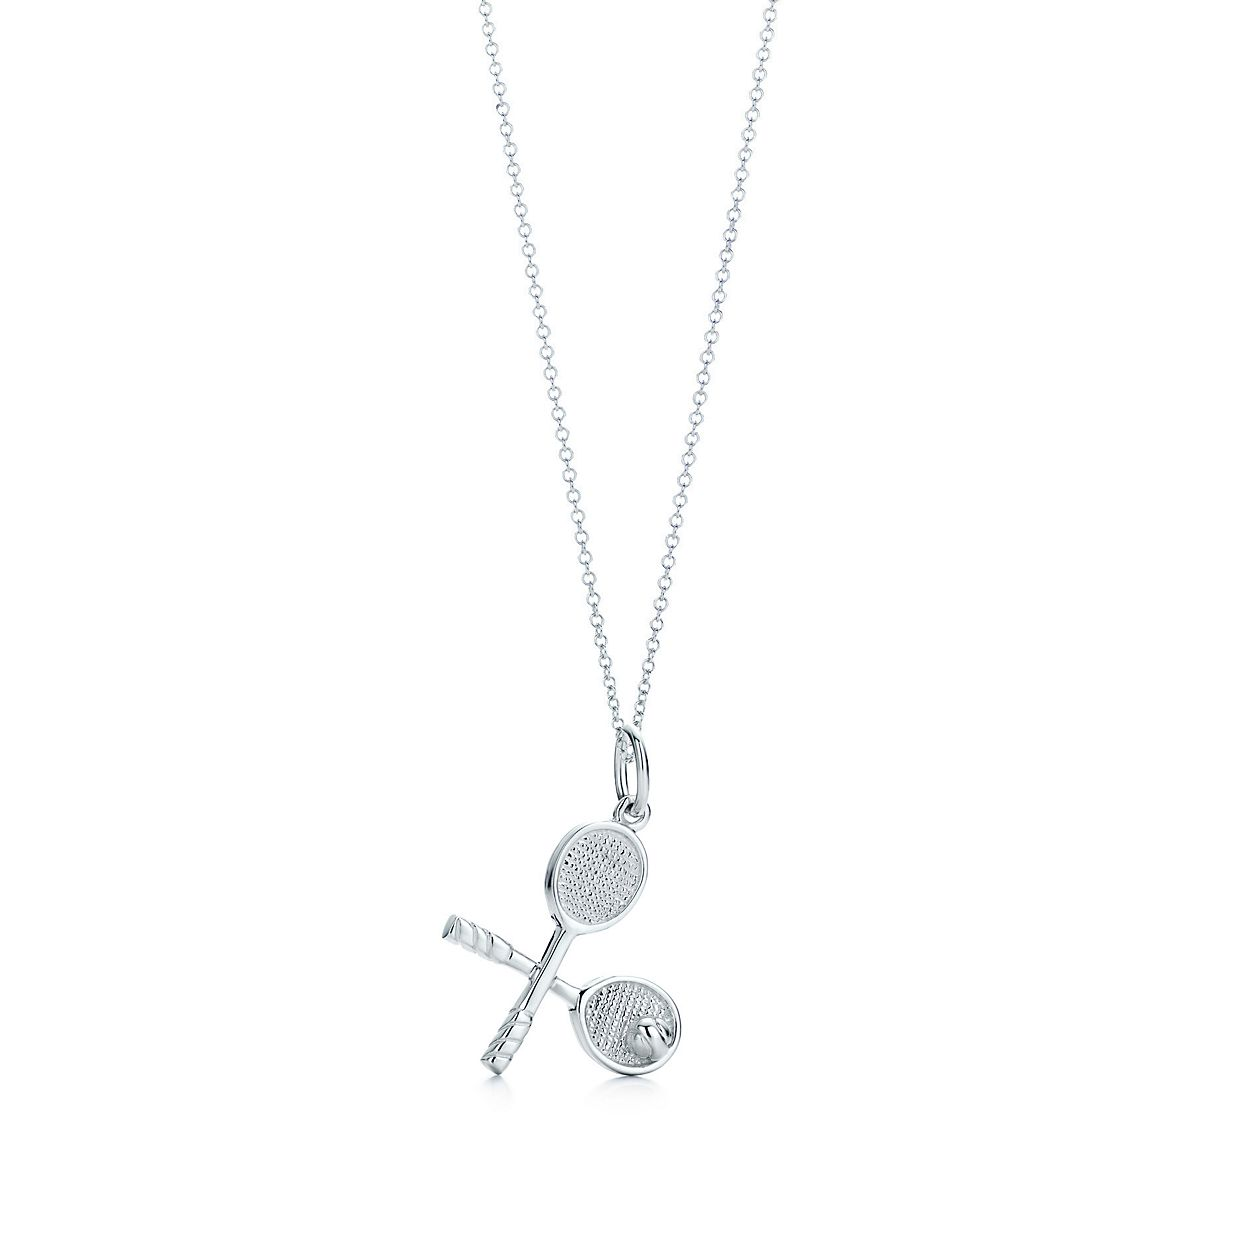 Tennis racquet charm in sterling silver on a chain tiffany co tennis racquet charm and chain tennis racquet charm and chain aloadofball Choice Image